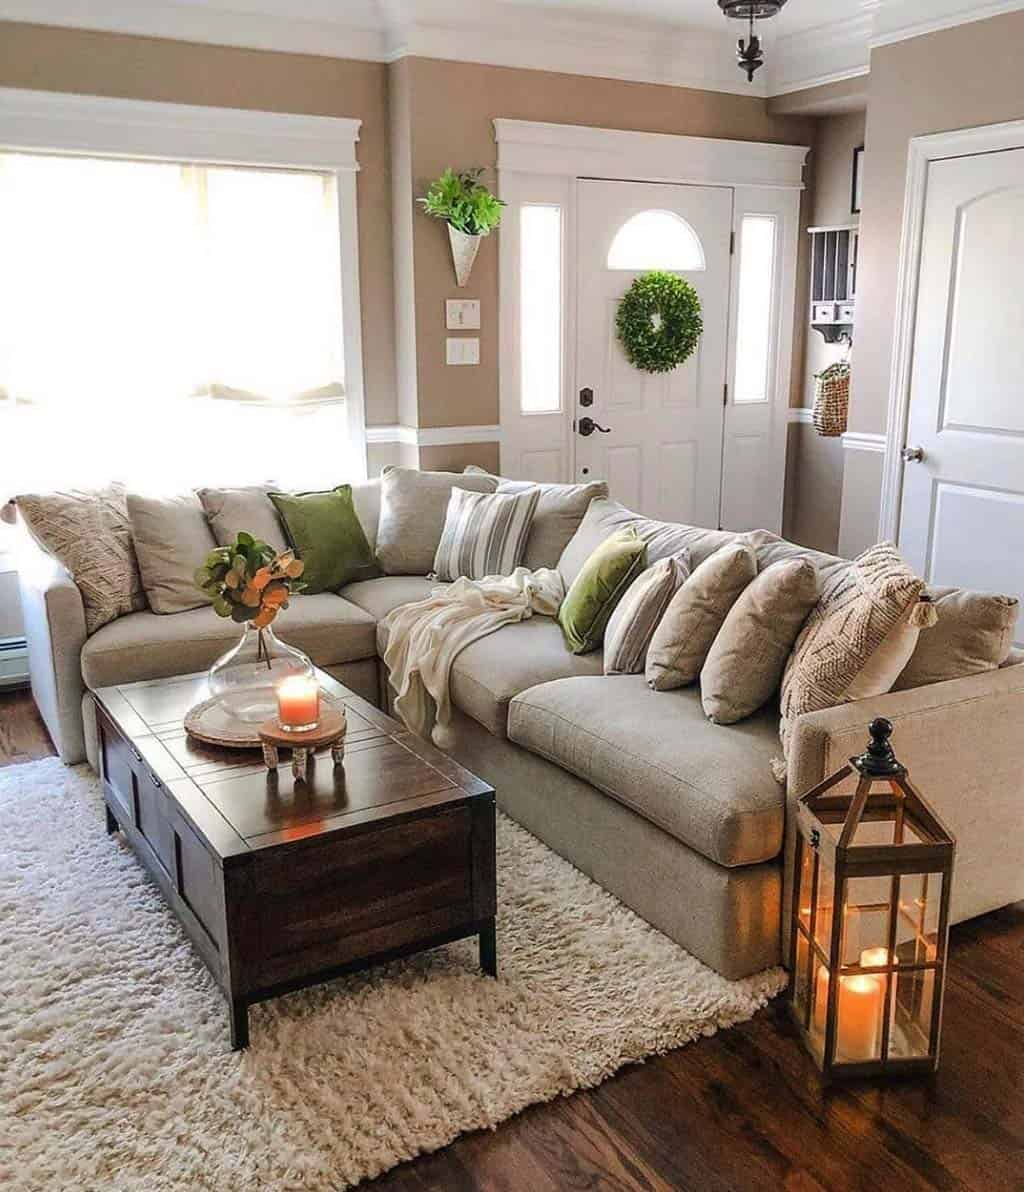 Cozy-Farmhouse-Fall-Decor-Ideas-23-1-Kindesign